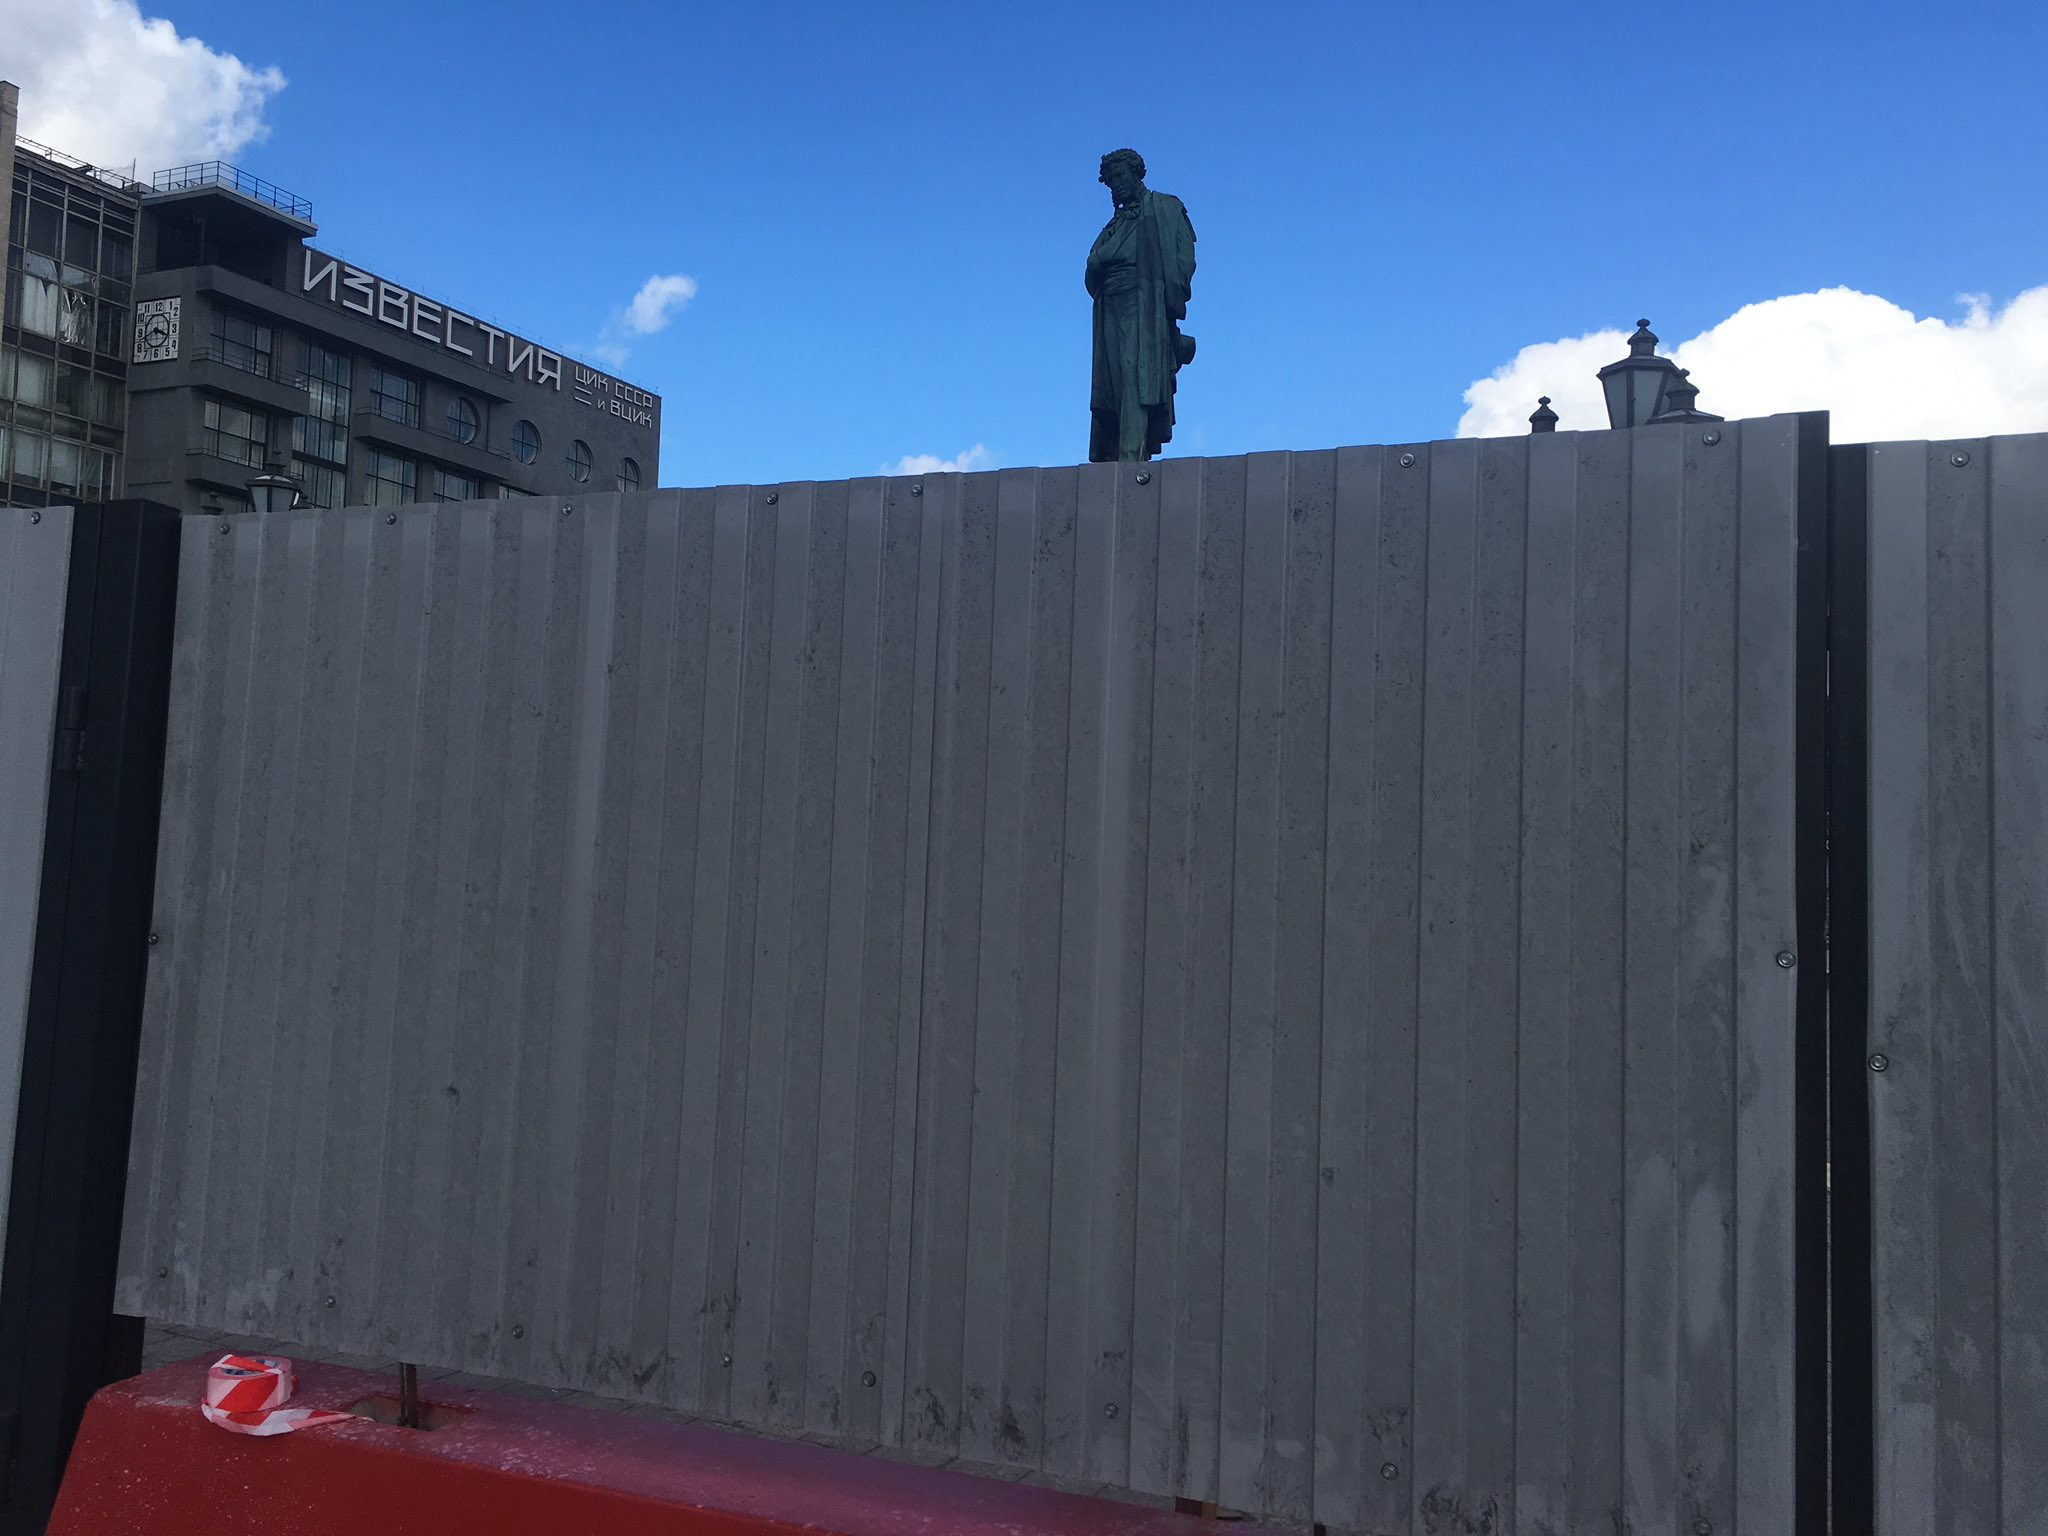 Moscow's Pushkin Square blocked off for 'reconstruction work', two days after anti-government protests here. https://t.co/EwYvzBvJEo